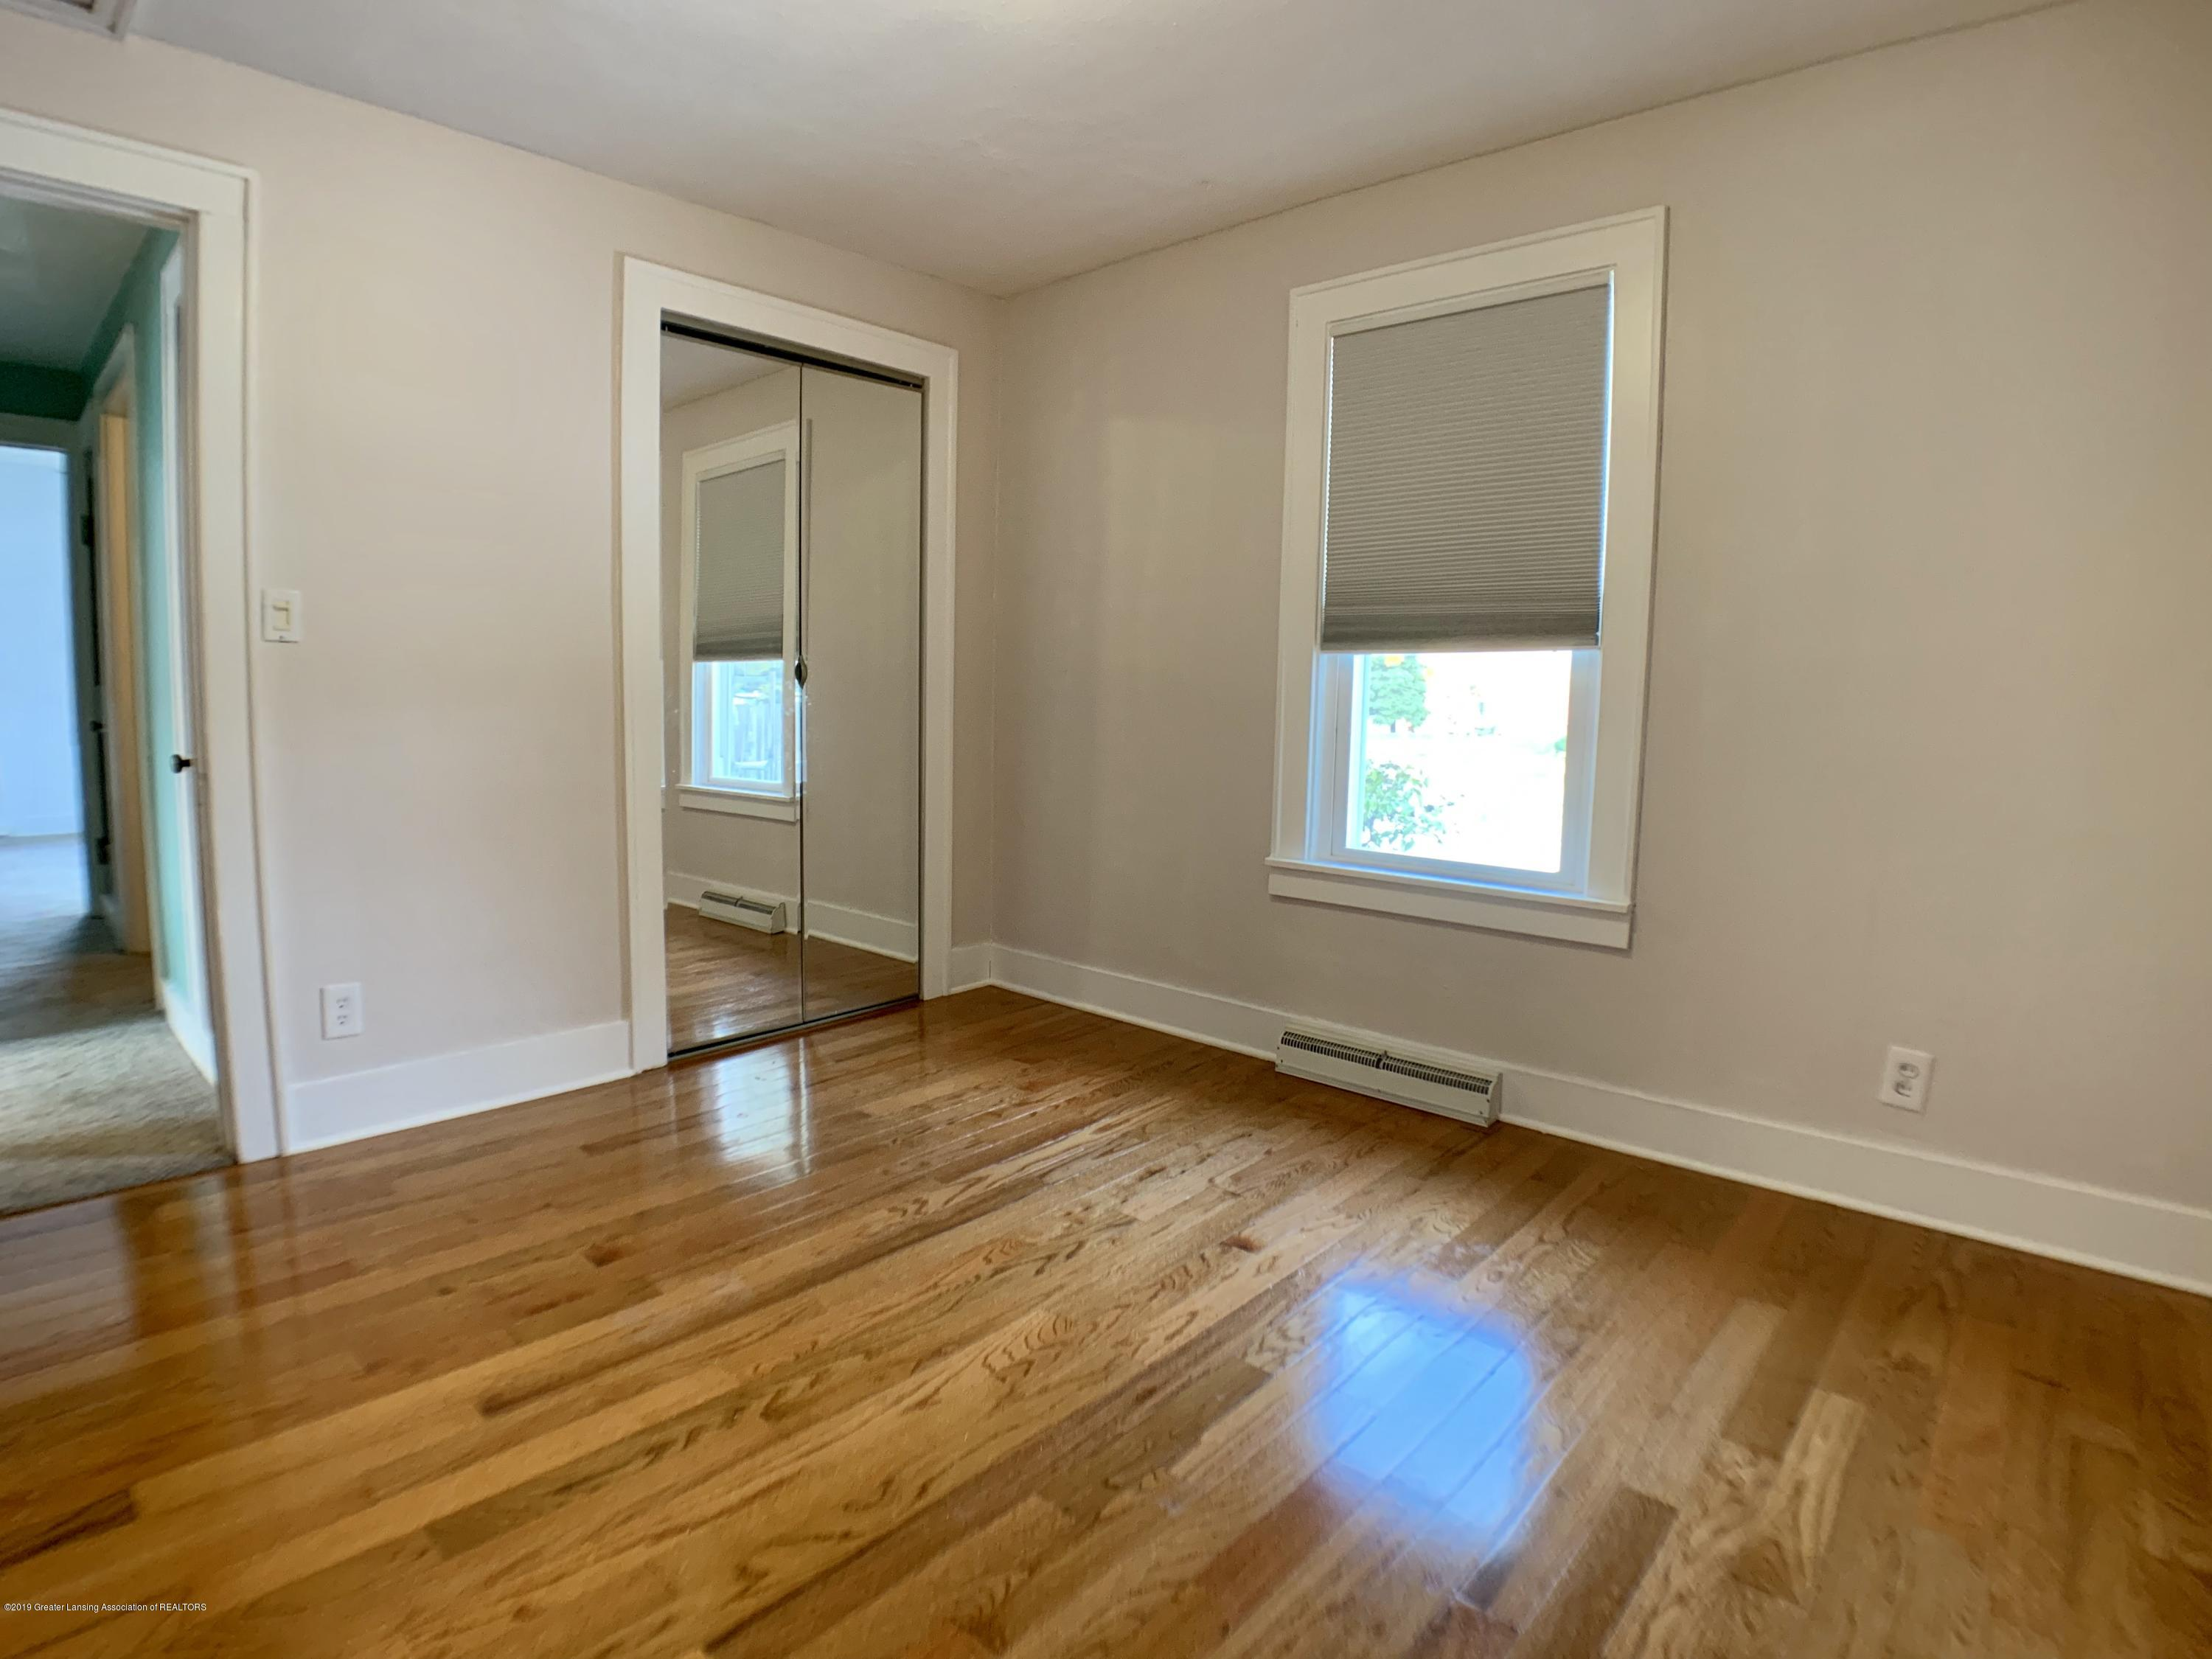 419 Hume Blvd - Bedroom - 16